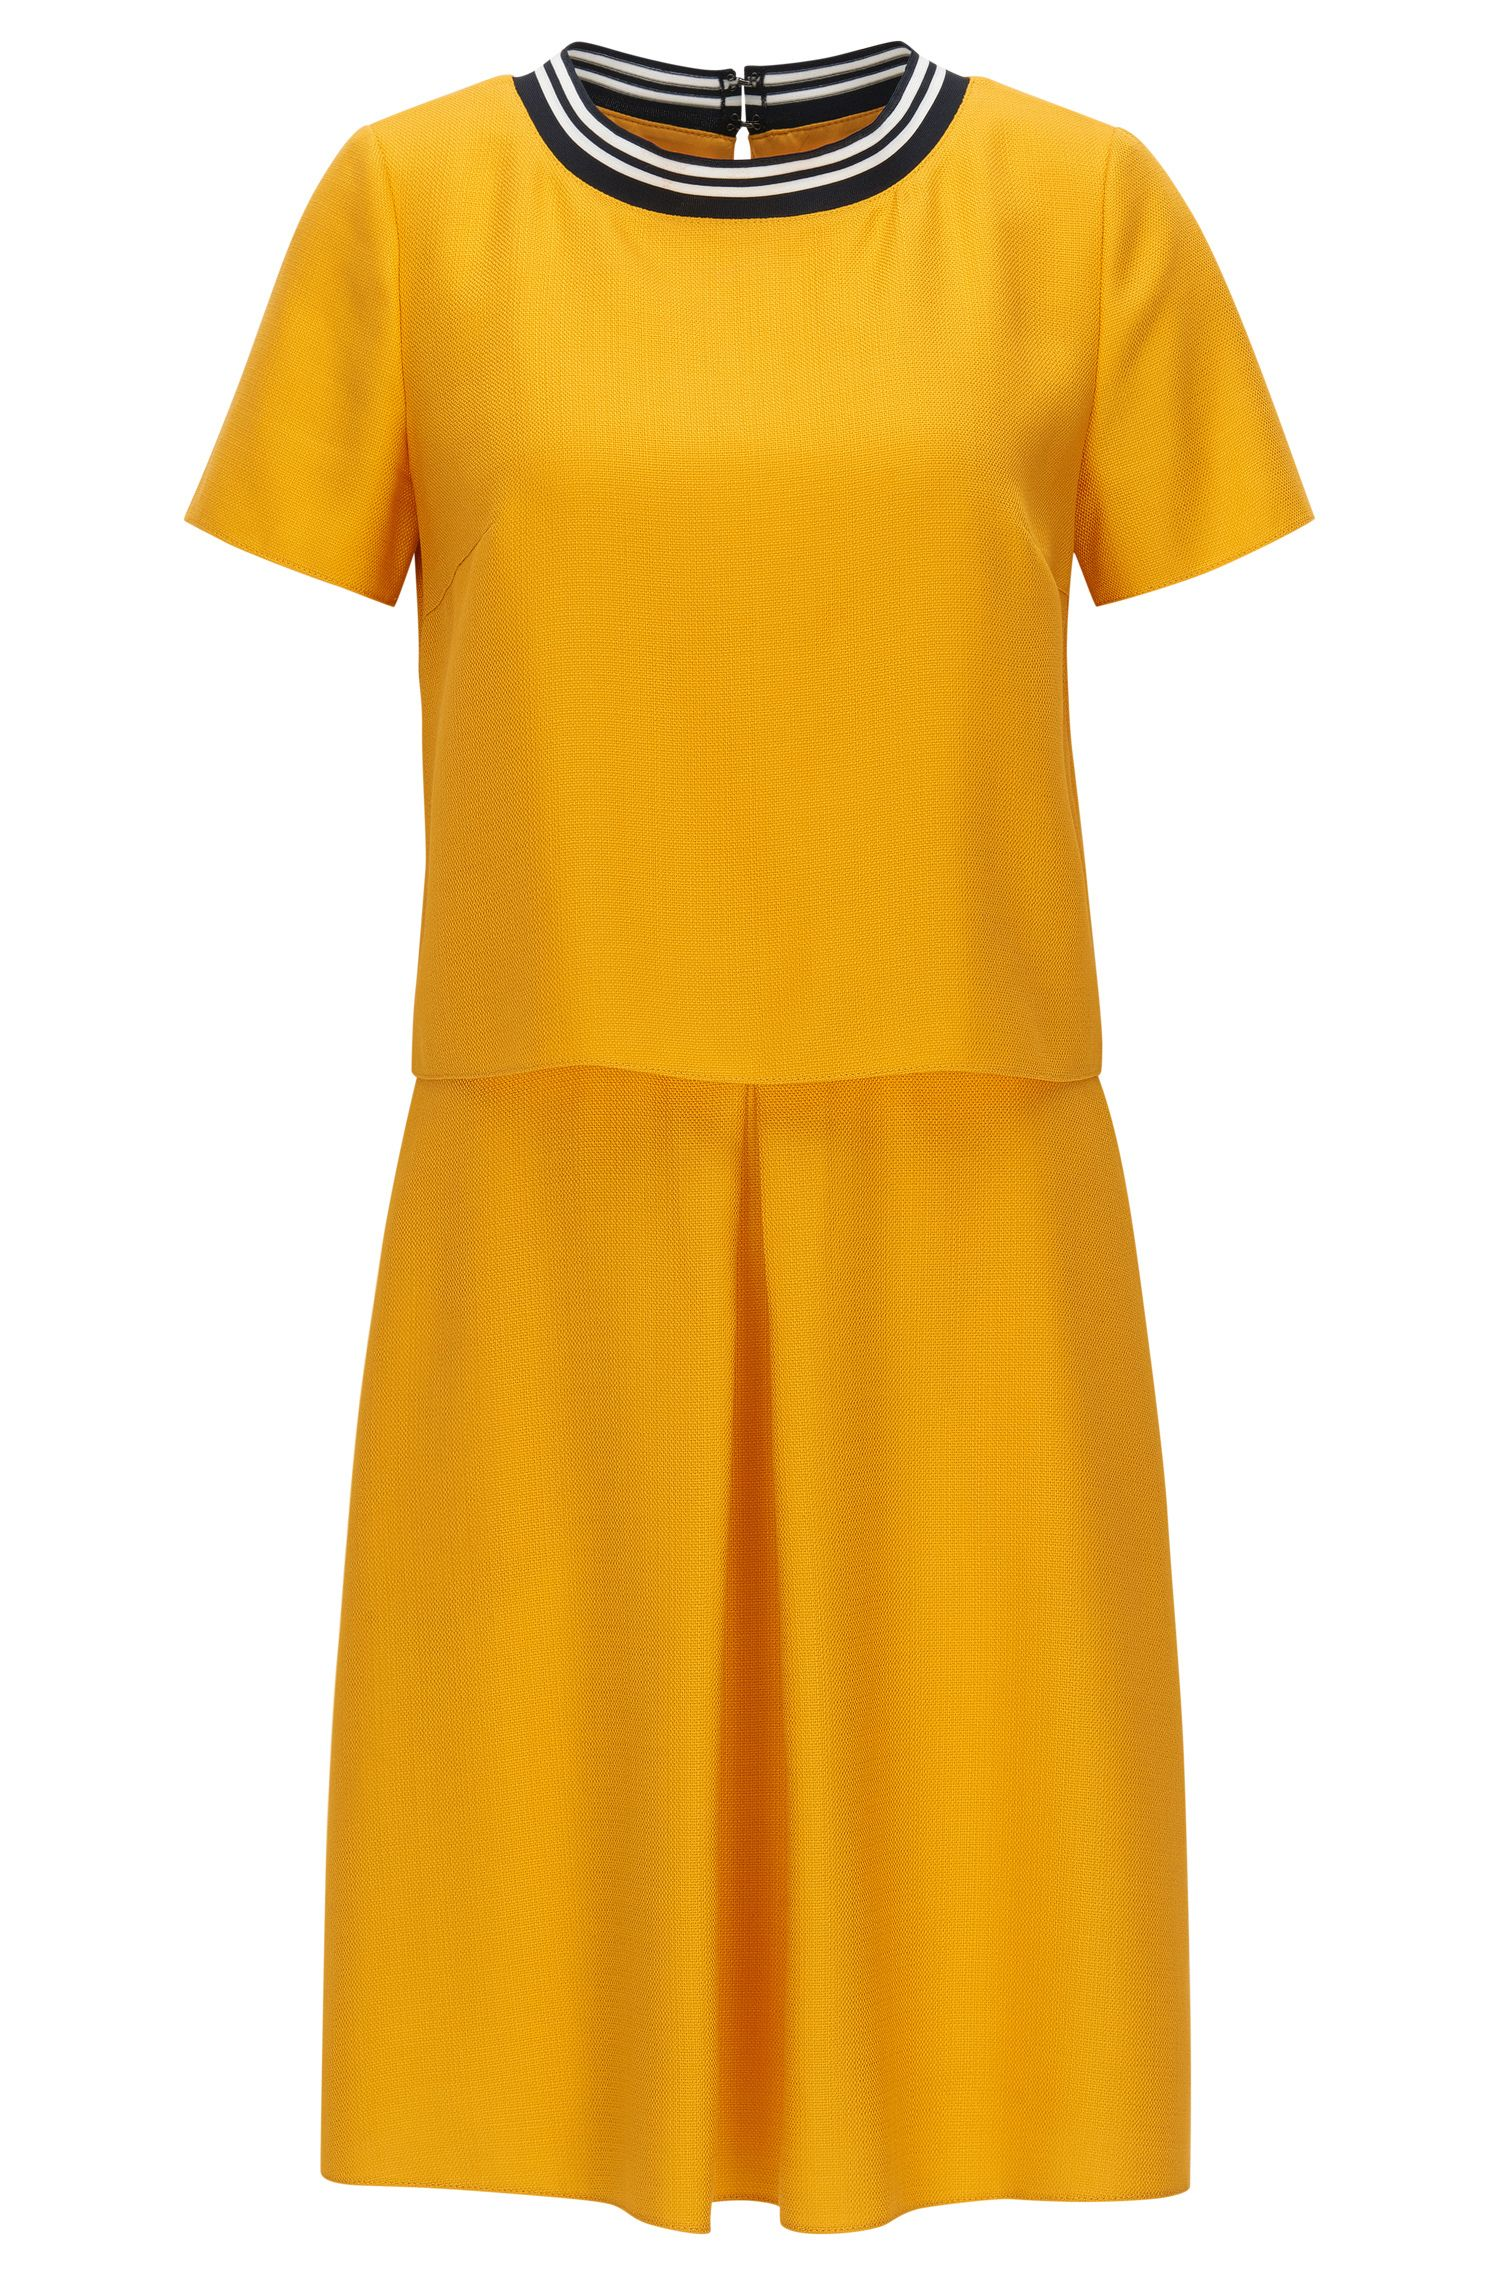 Lightweight short-sleeved layer dress